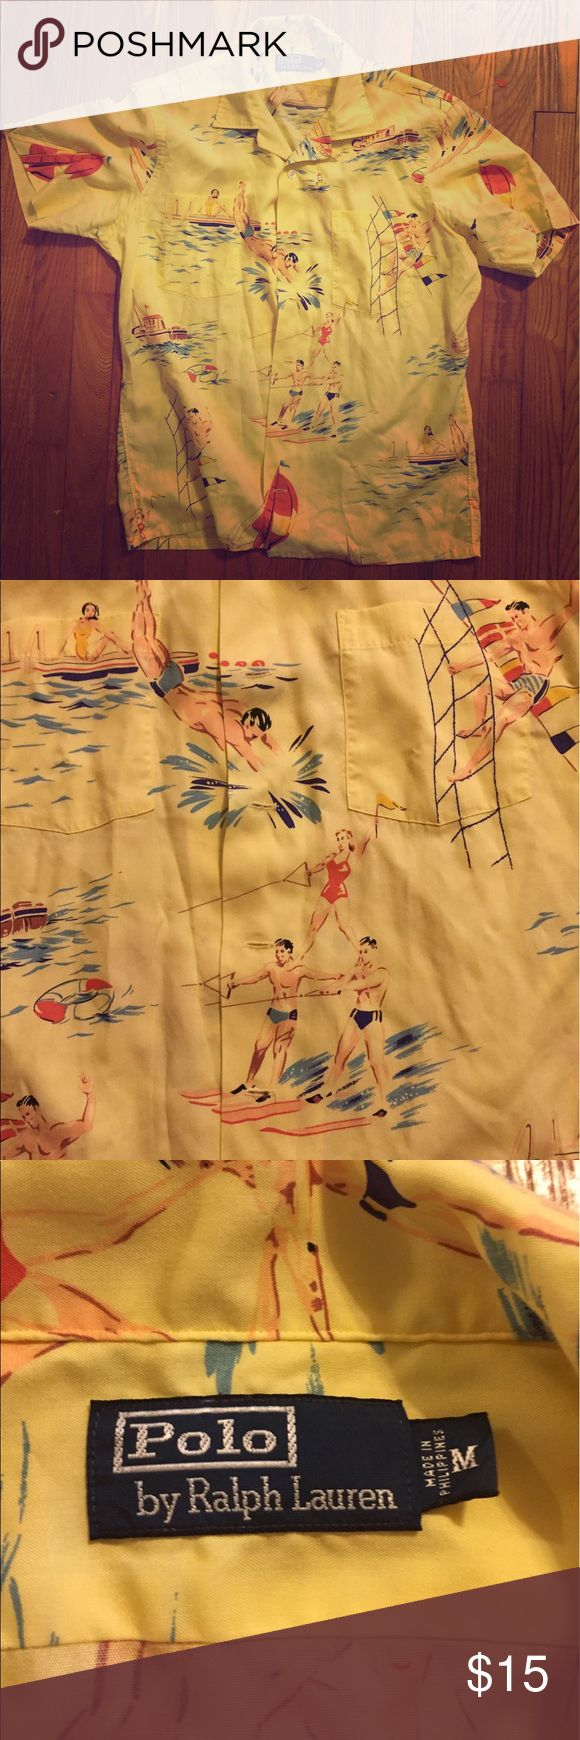 Polo Ralph Lauren Beach Scene Men's Shirt So cook! features a vintage beach scene on a lighter yellow background. Polo by Ralph Lauren Shirts Casual Button Down Shirts